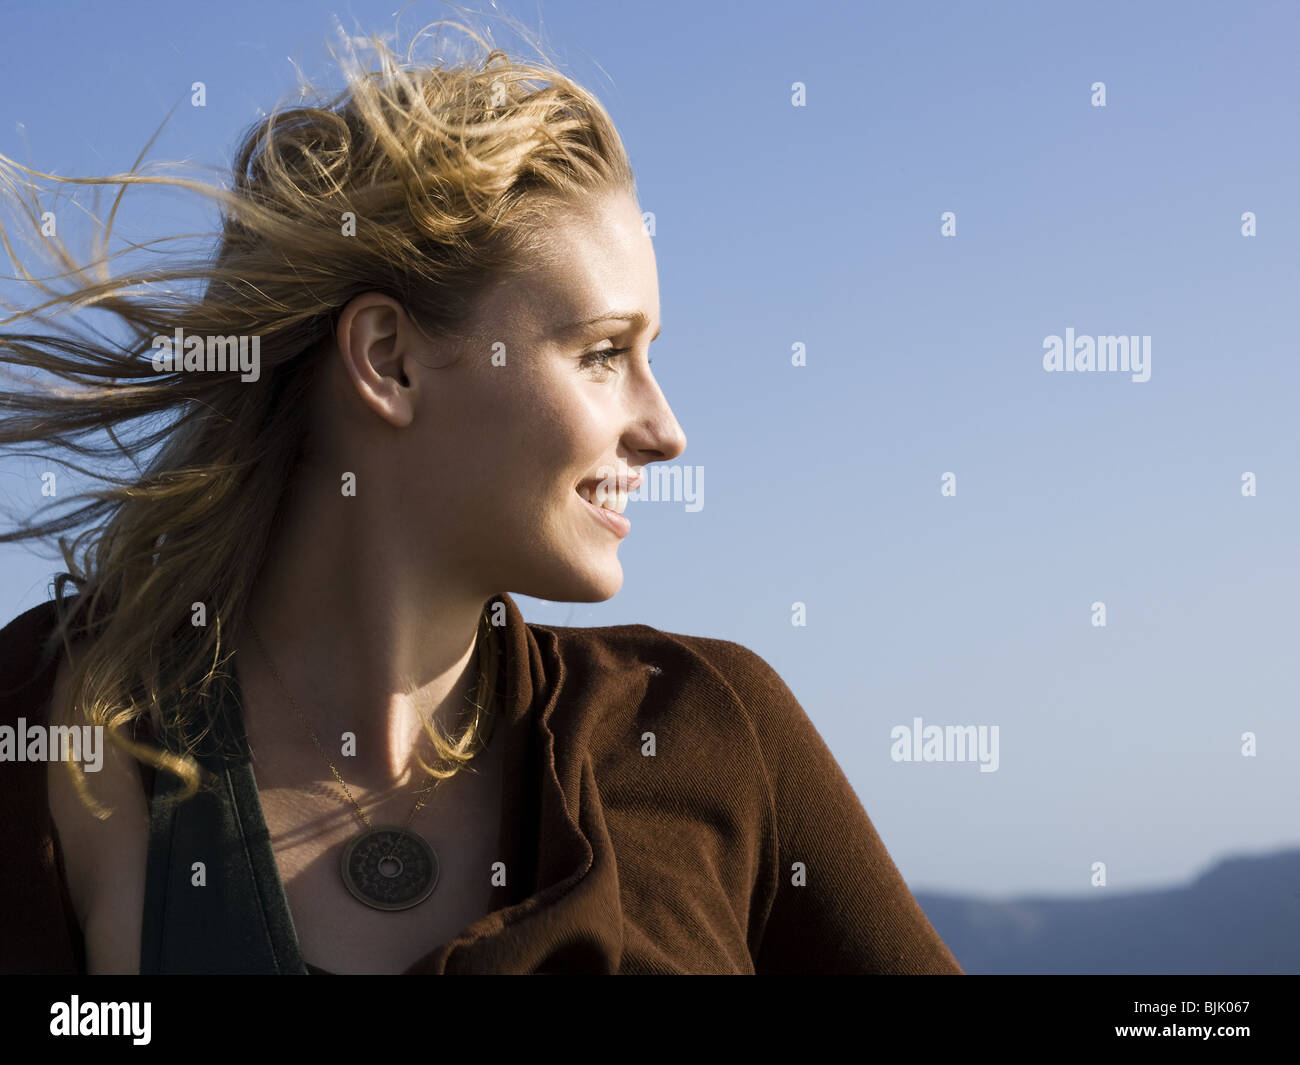 Closeup of woman smiling outdoors with blue sky Banque D'Images